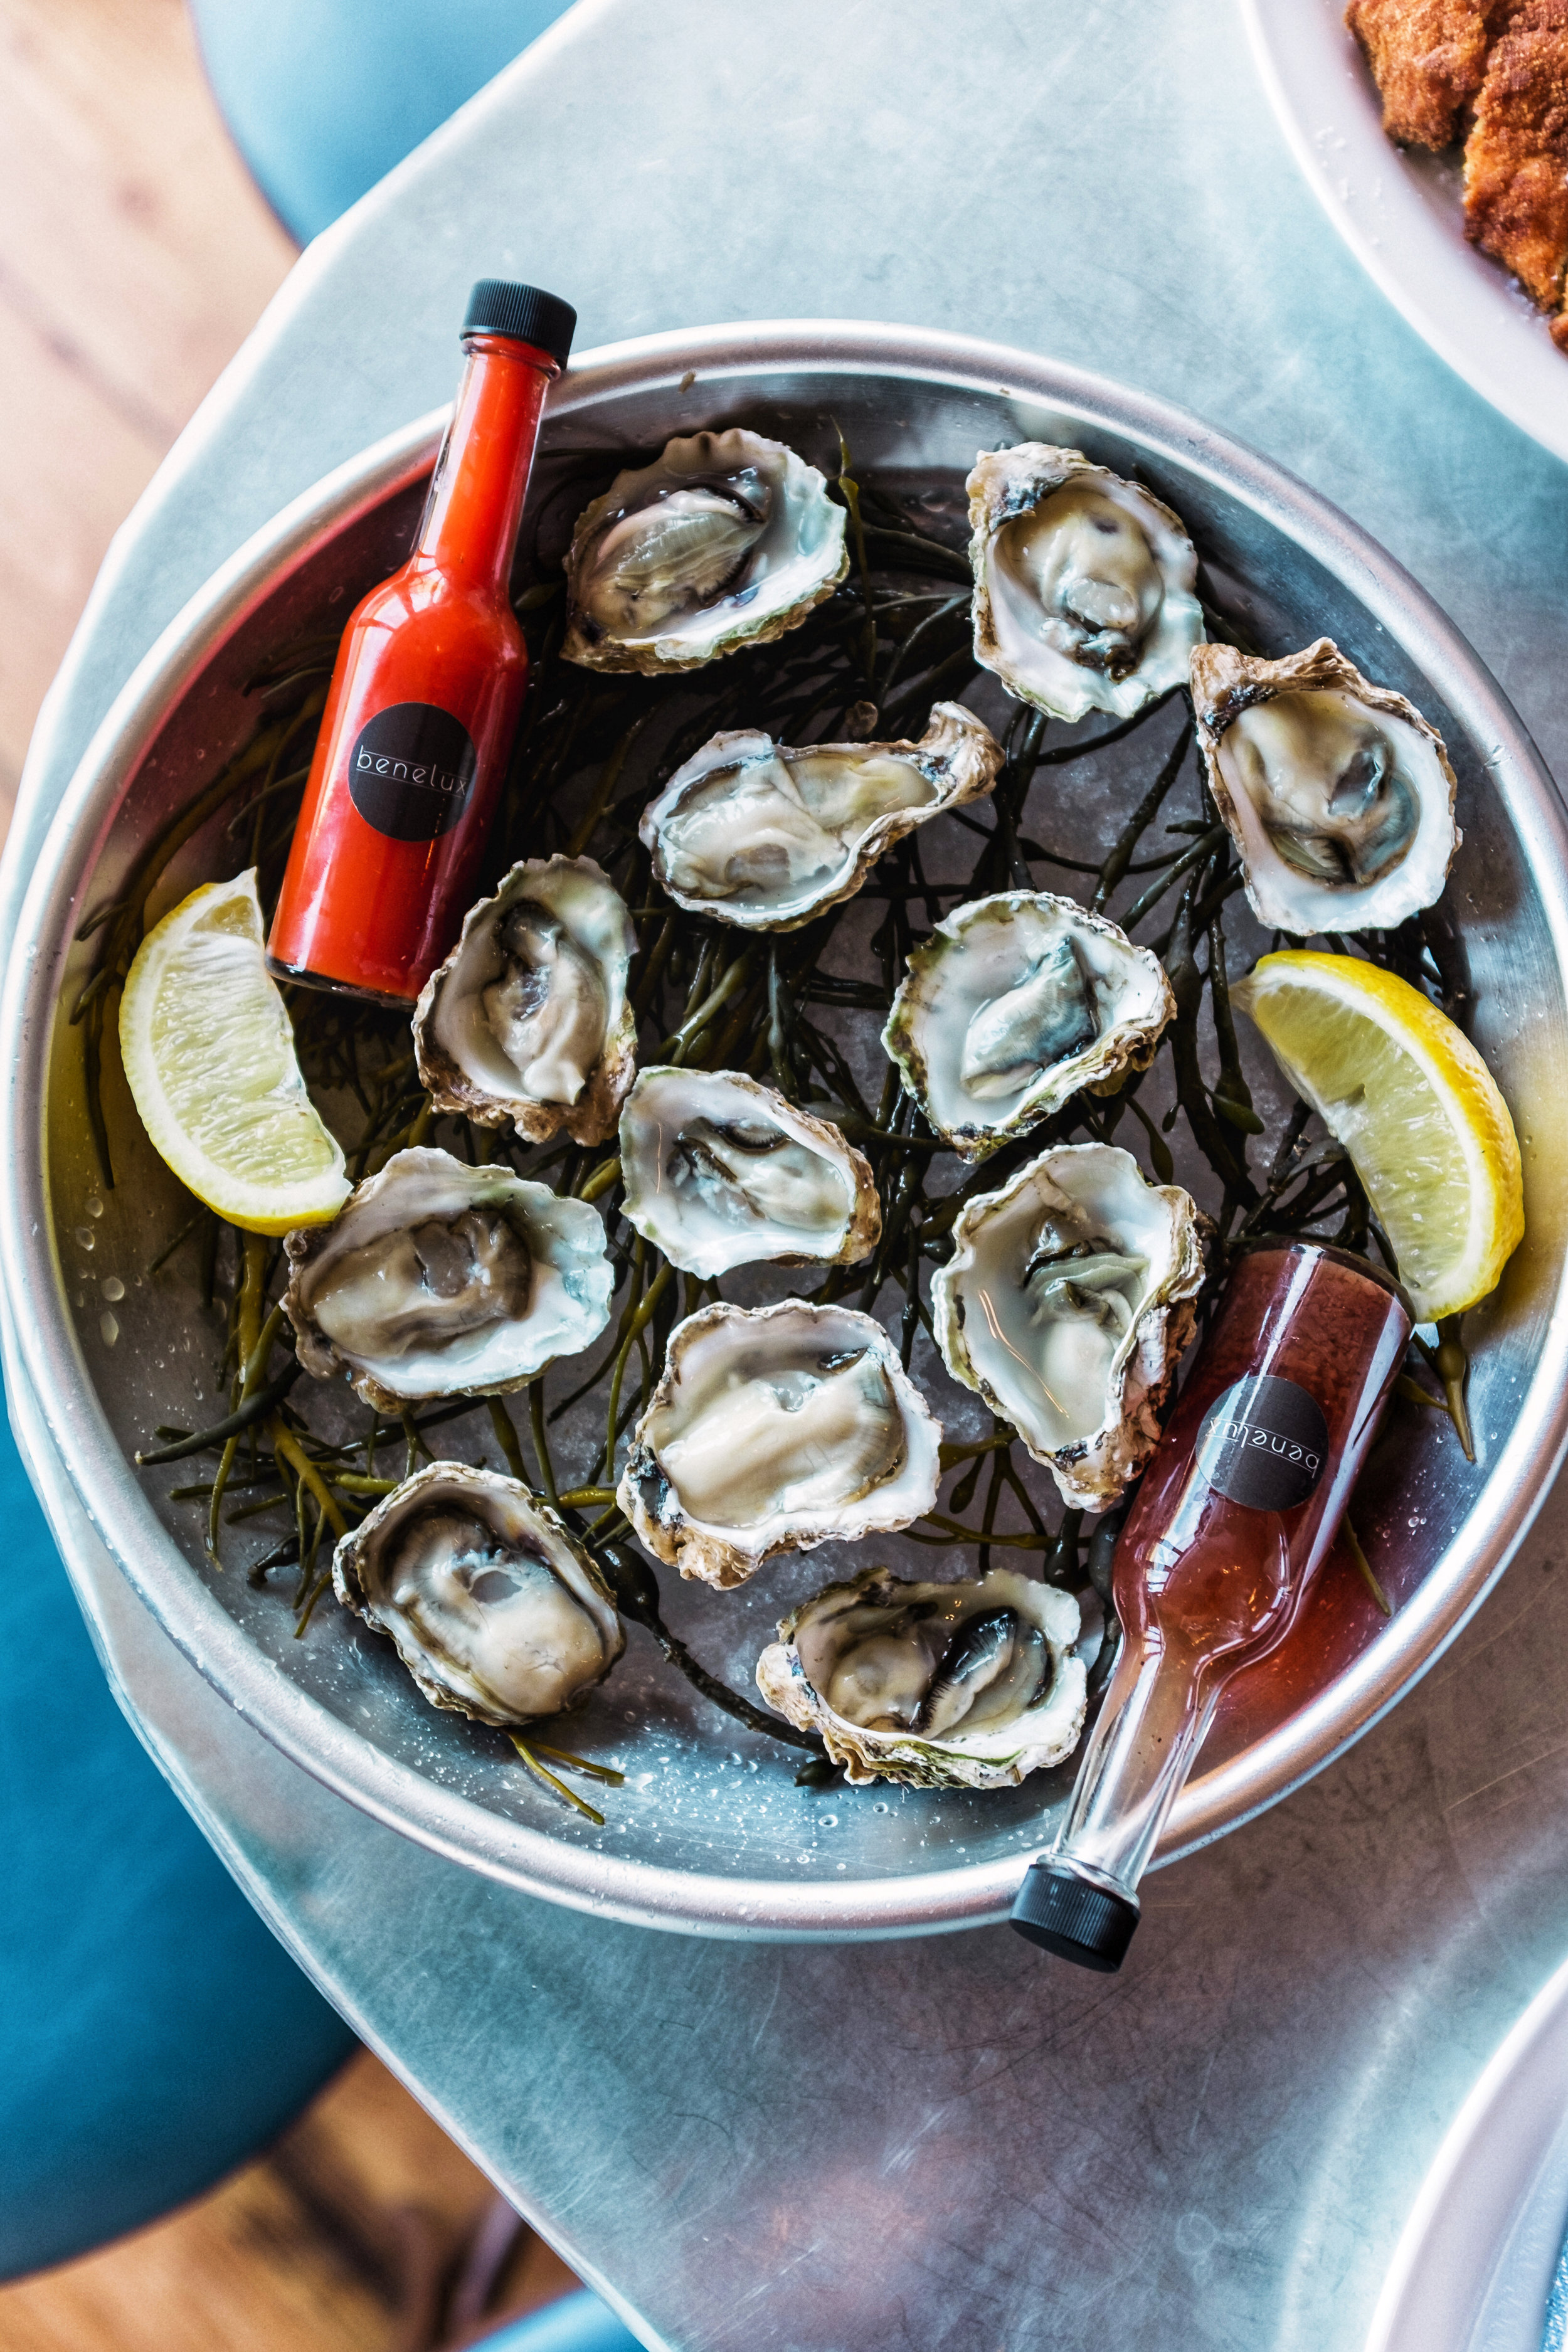 oysters at benelux